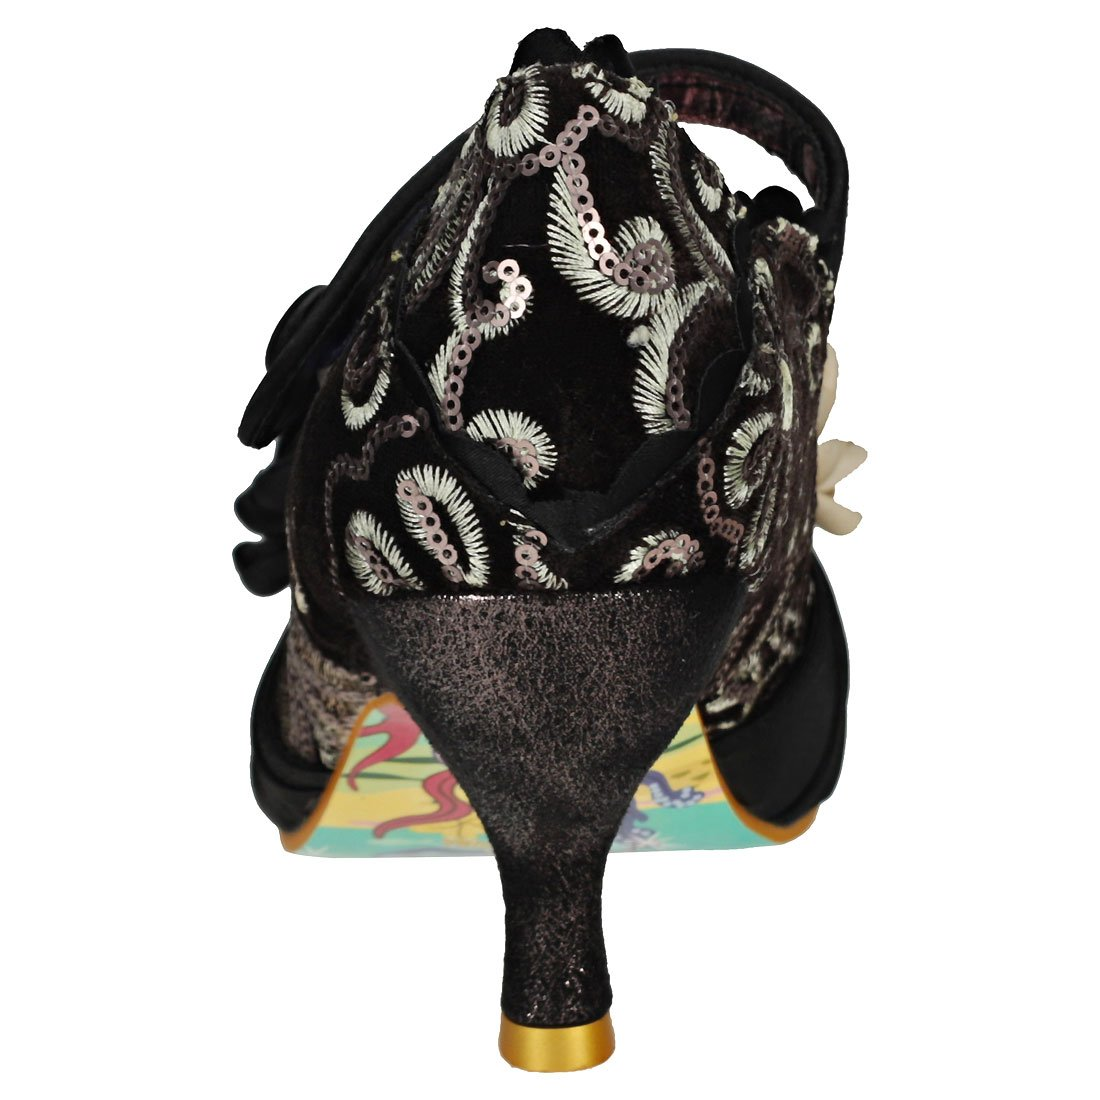 Low Button Womens Party Heel Irregular Choice Court Thames Upon FTKJu3l1c